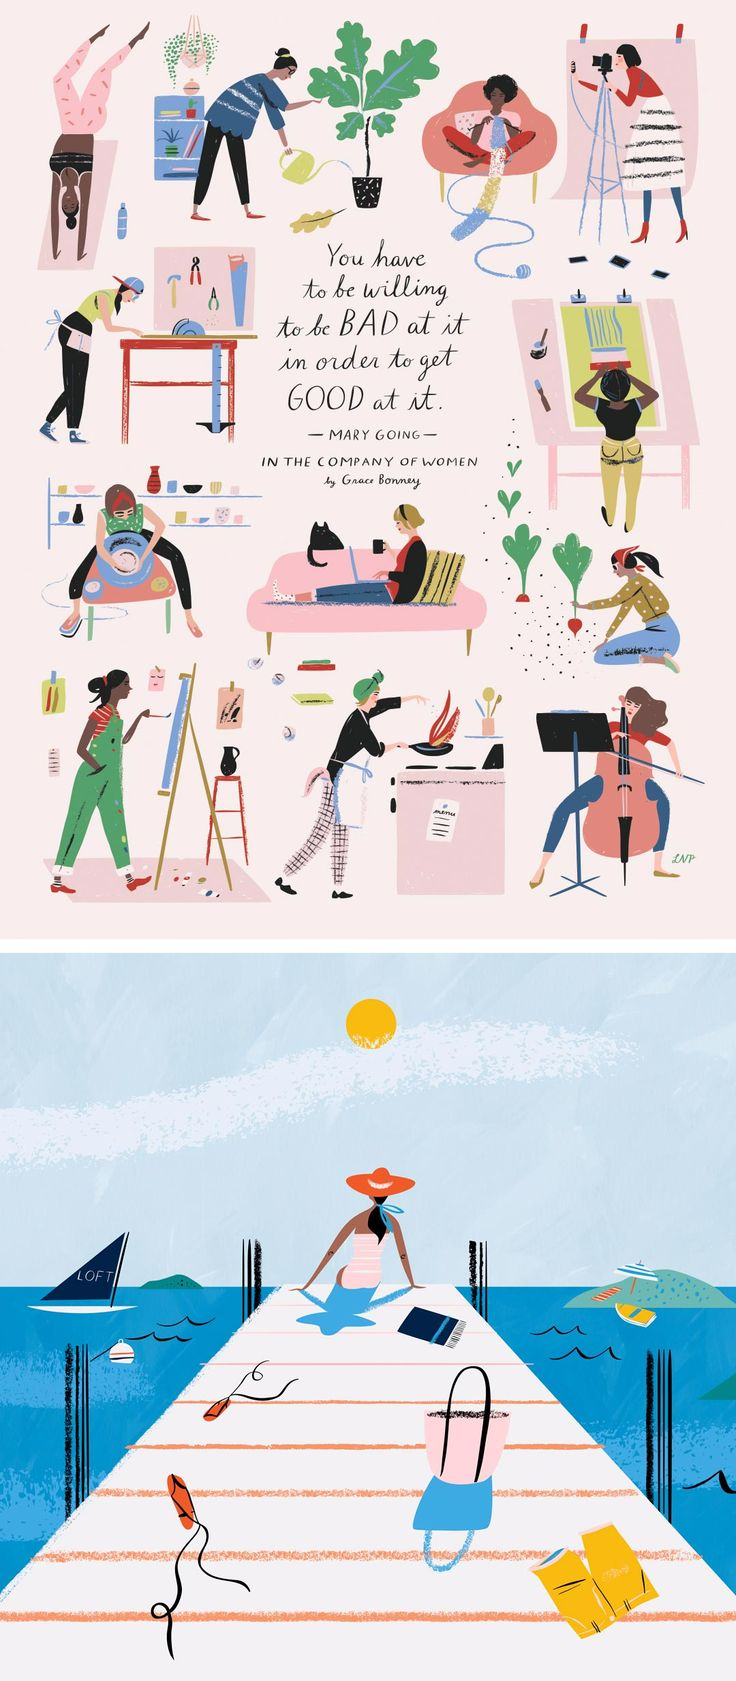 Libby VanderPloeg's Love of Cooking Leads to Animated GIF Illustrations